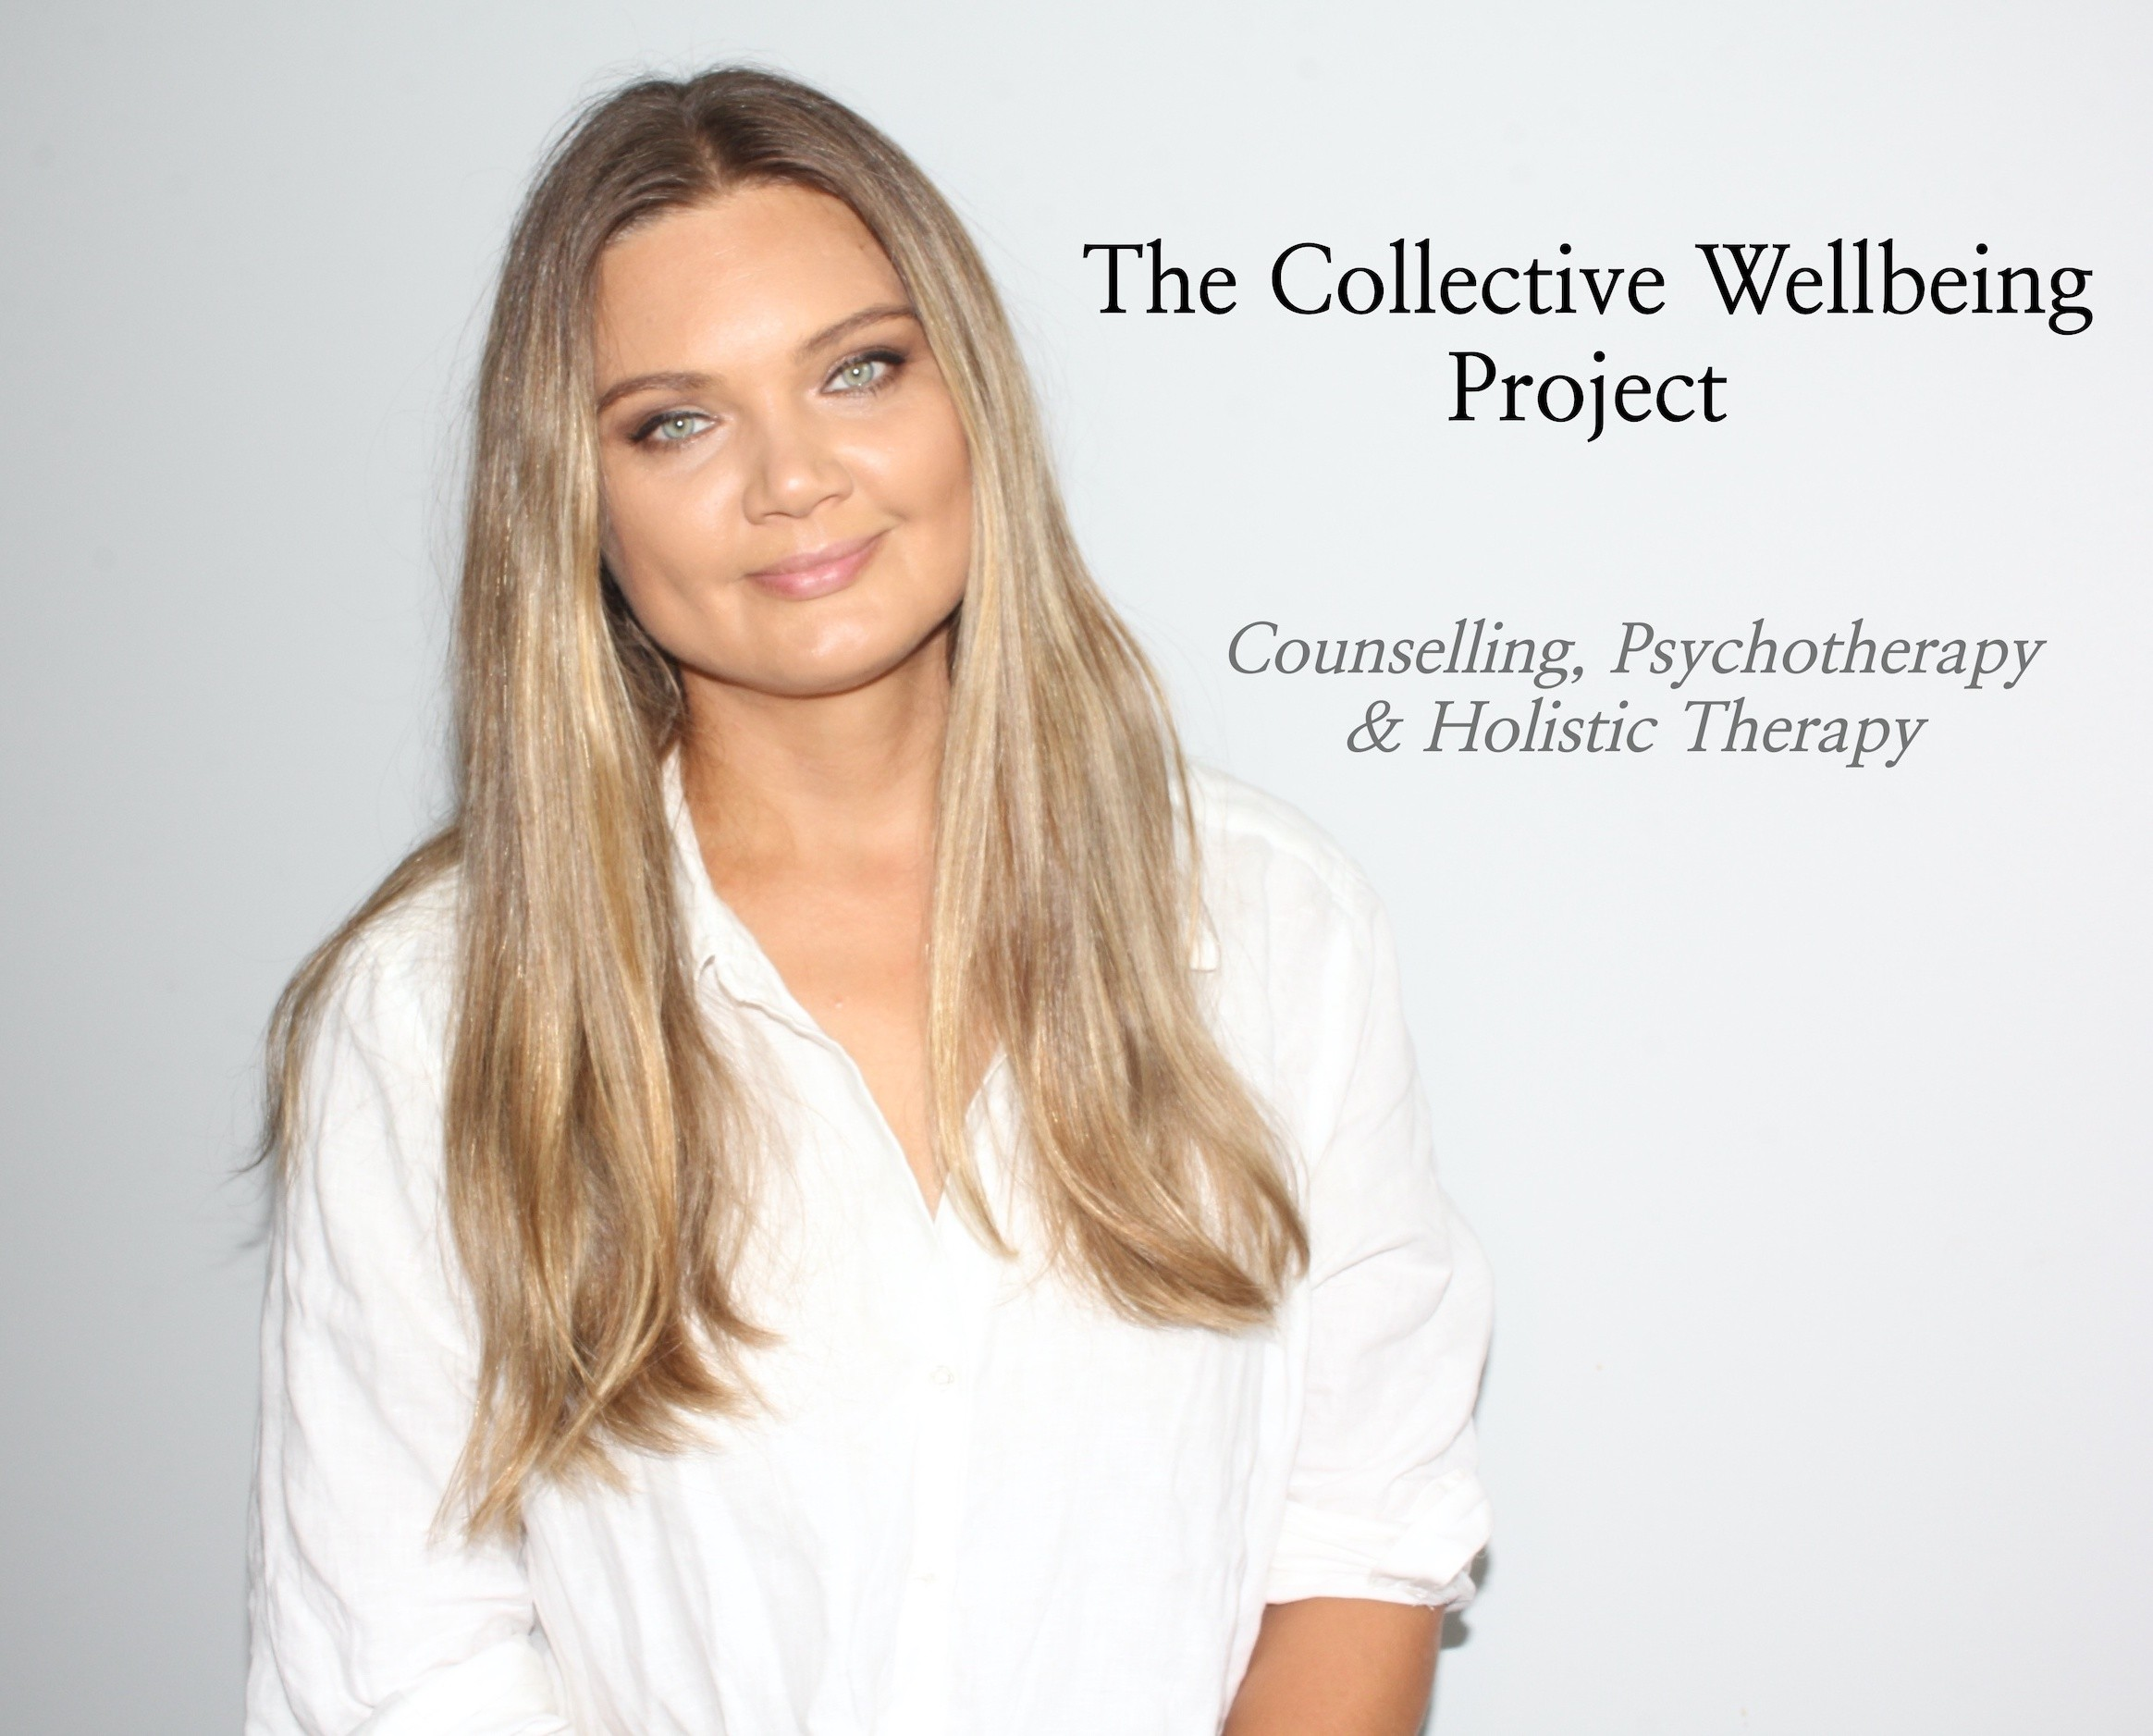 The Collective Wellbeing Project